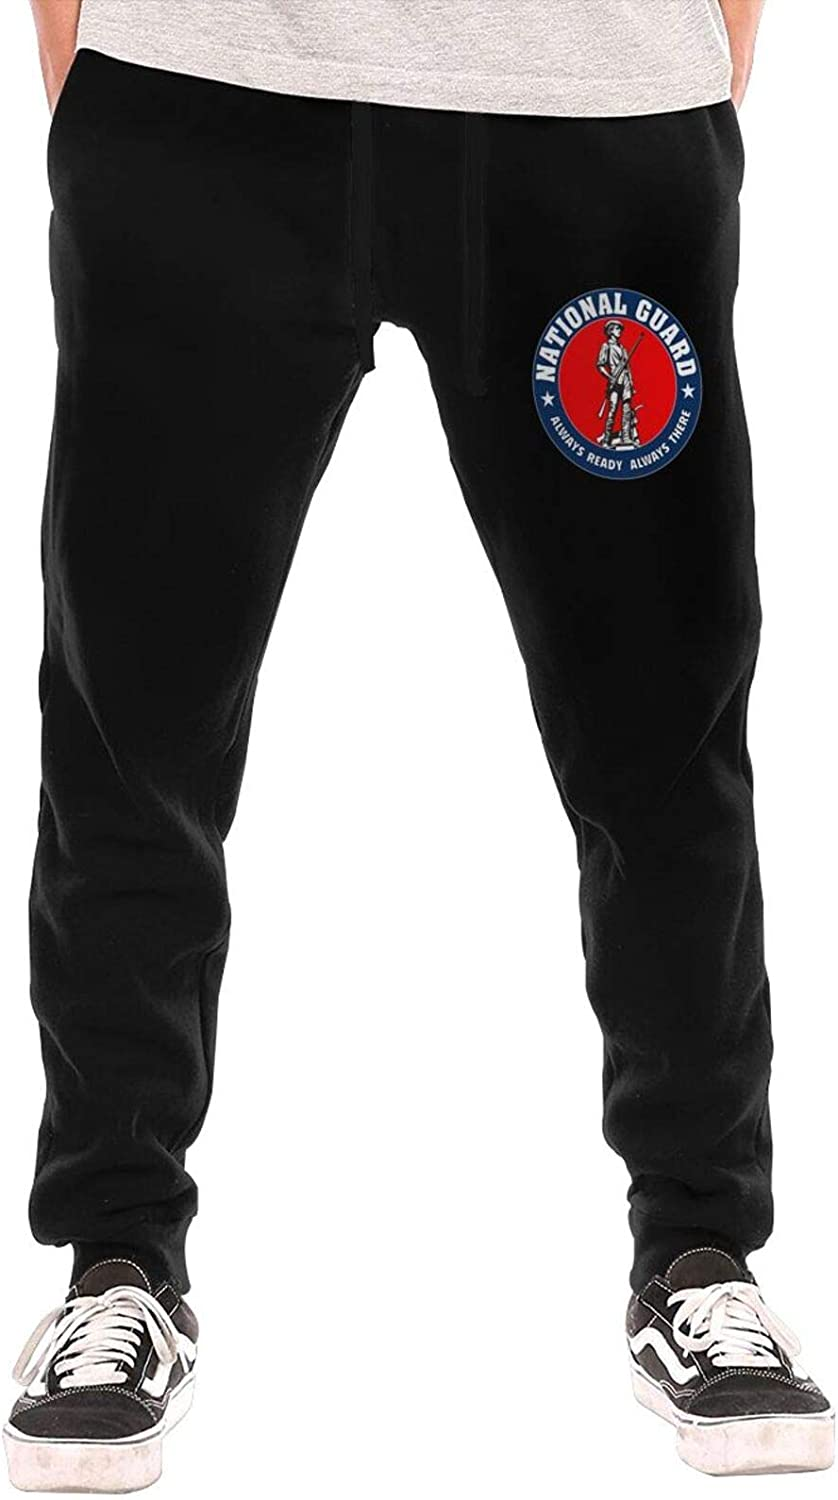 United States Army National Guard OFFicial site Sports Mens Popularity Sweatpant Tro Logo